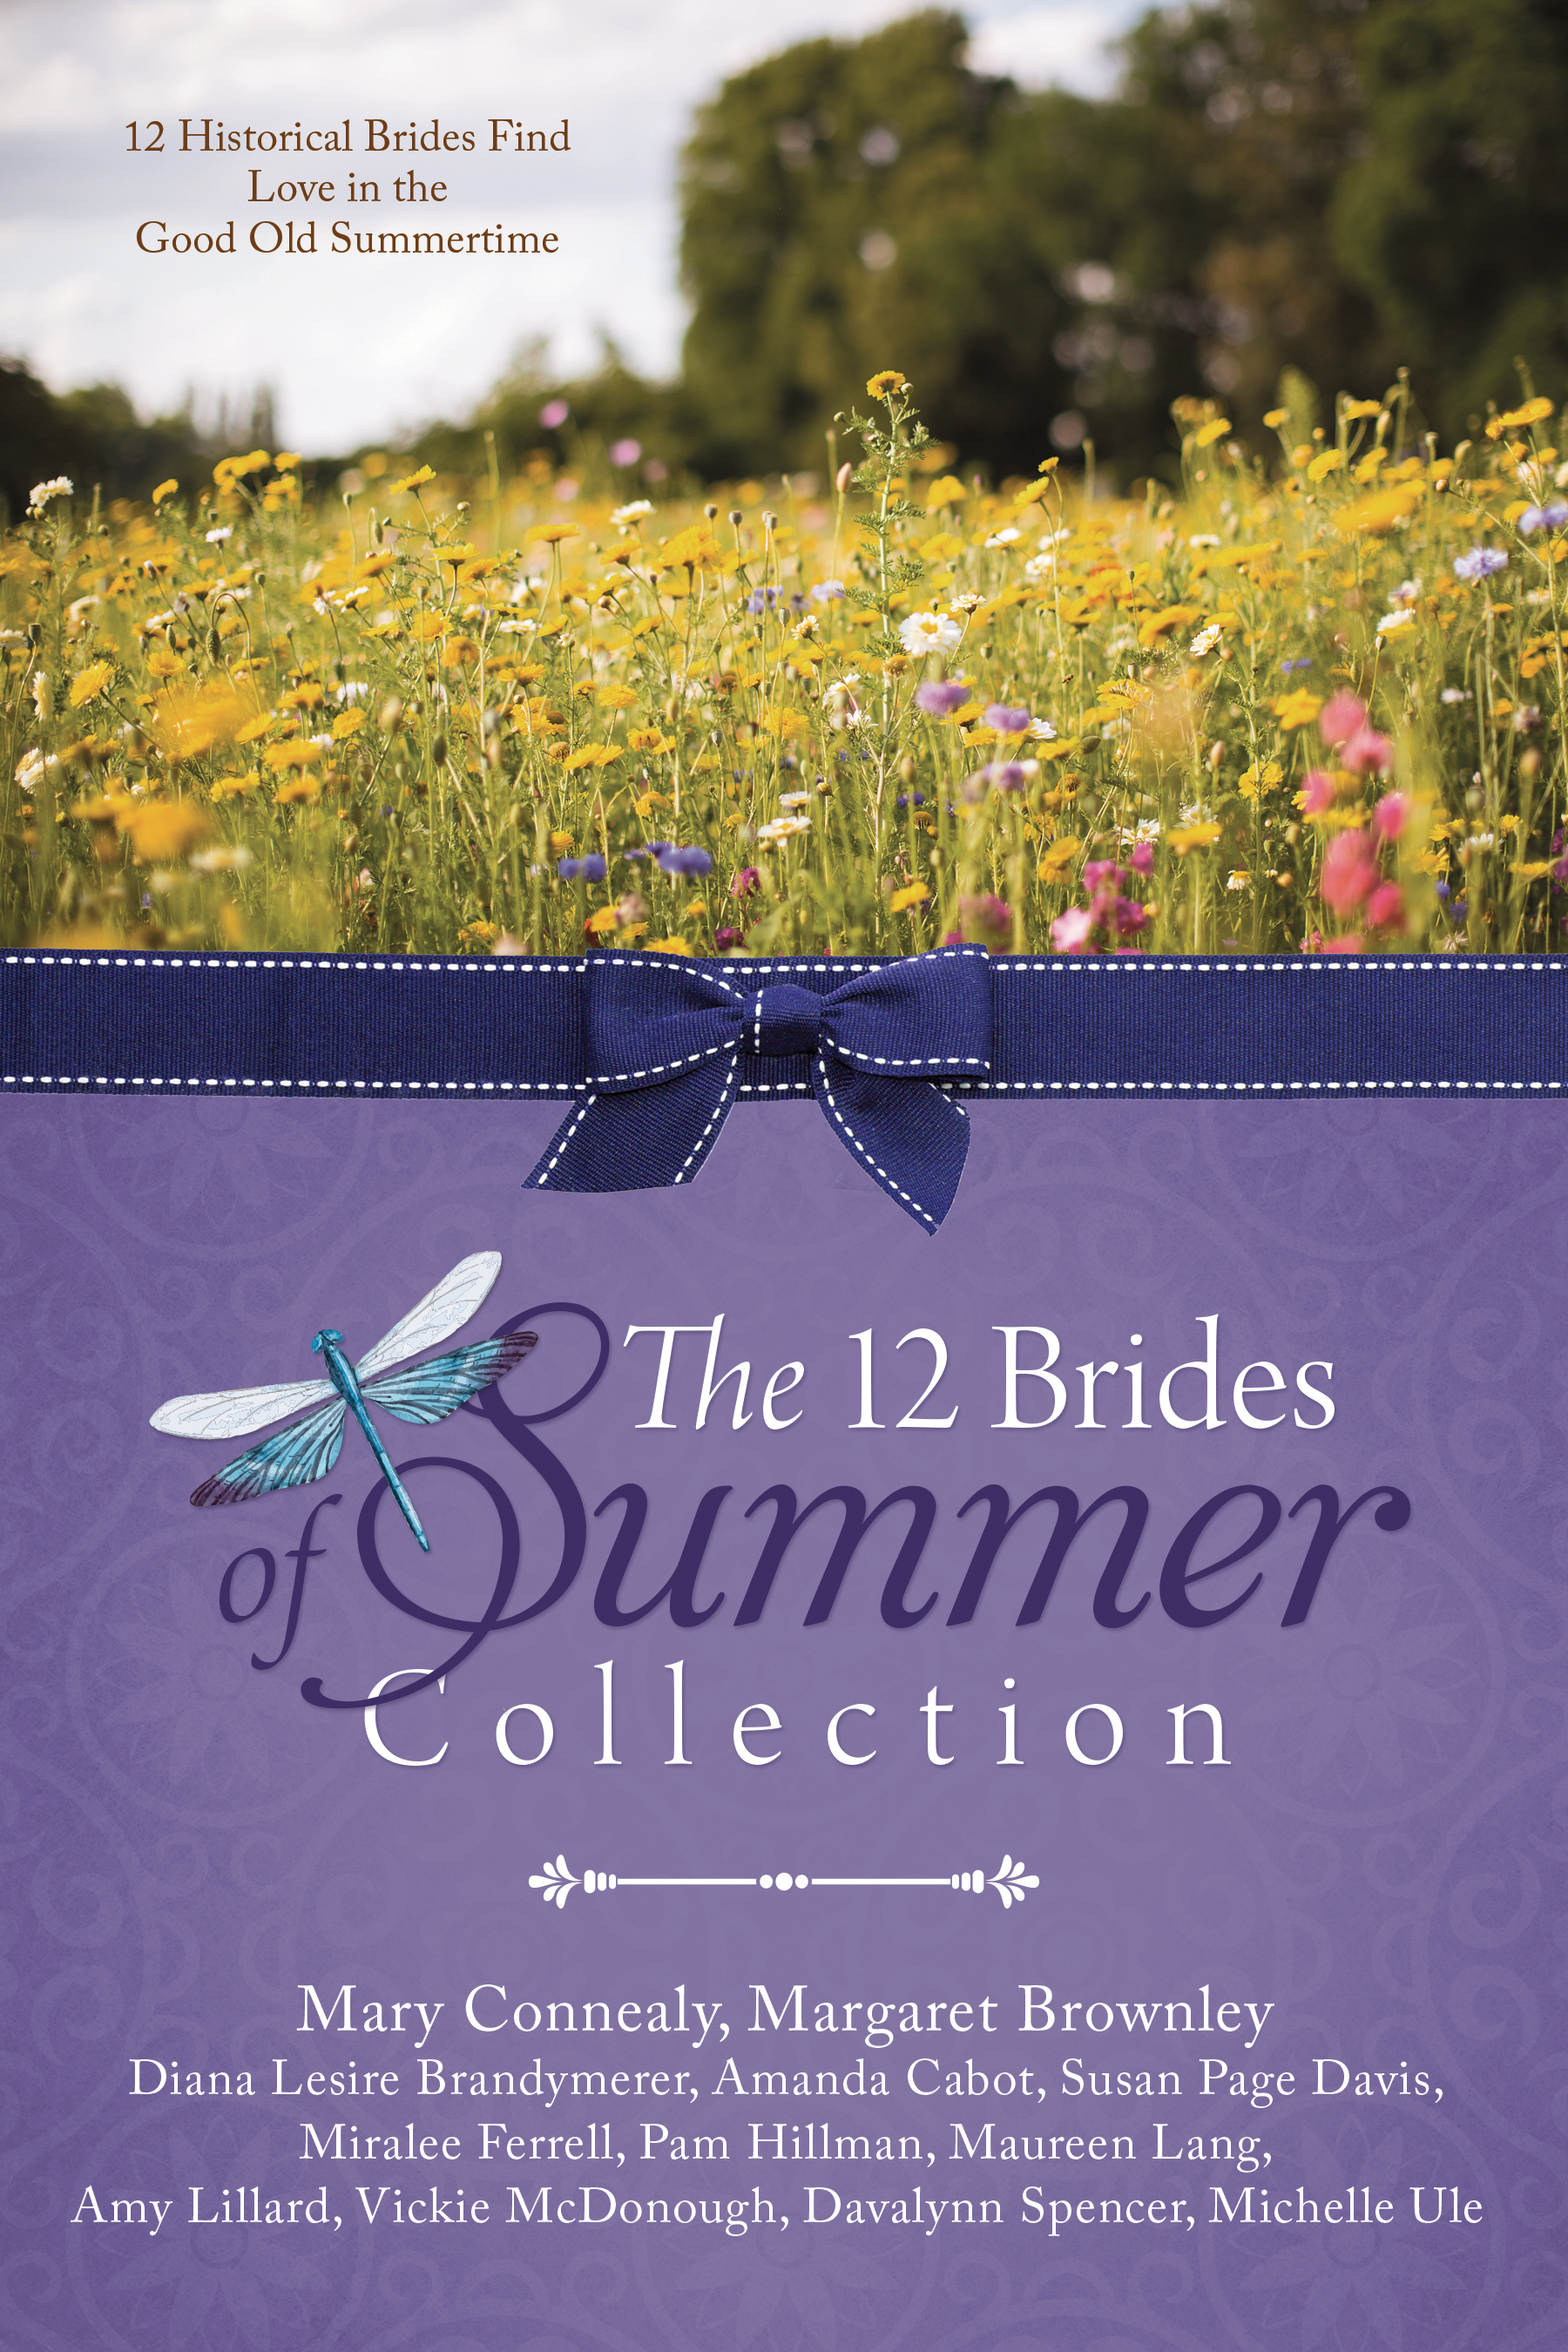 12 Brides of Summer Collection